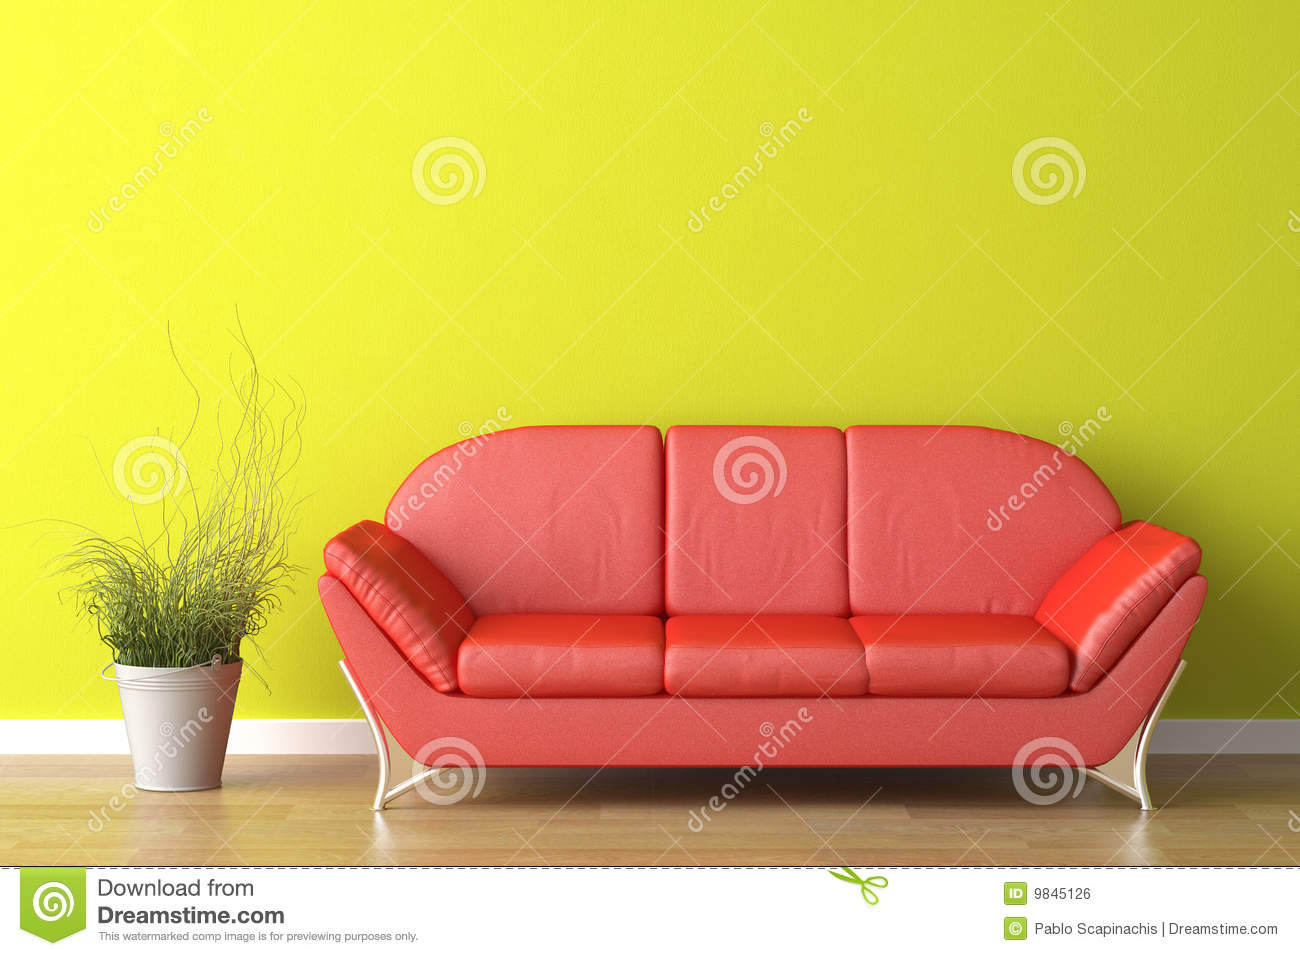 Interior design red couch on green royalty free stock - Red and green interior design ...